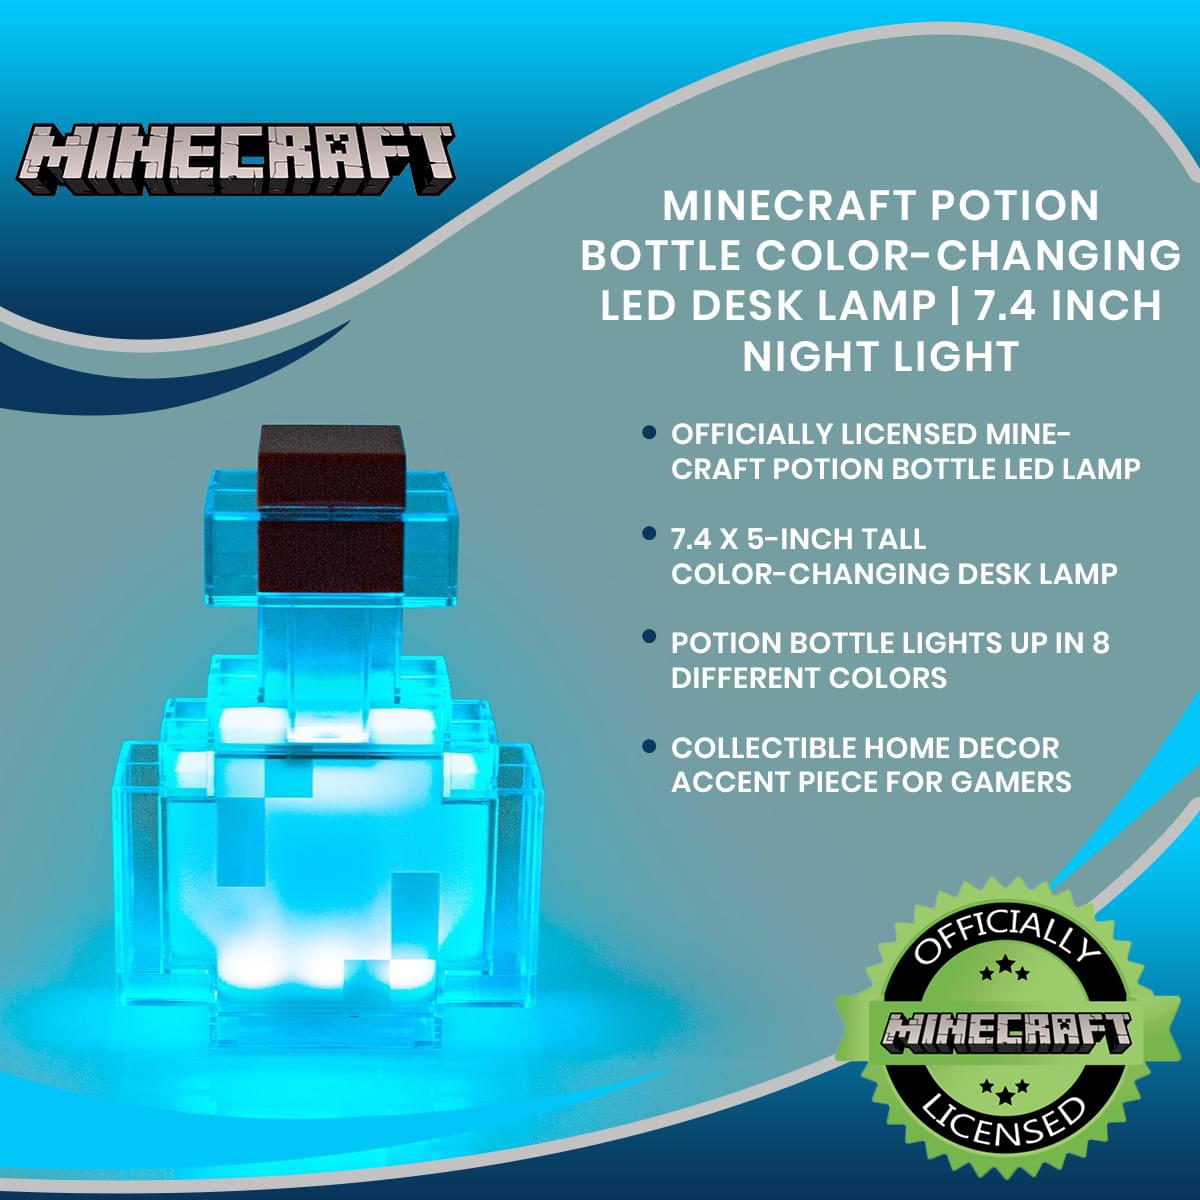 Minecraft Potion Bottle Color-Changing LED Desk Lamp | 7 Inch Night Light